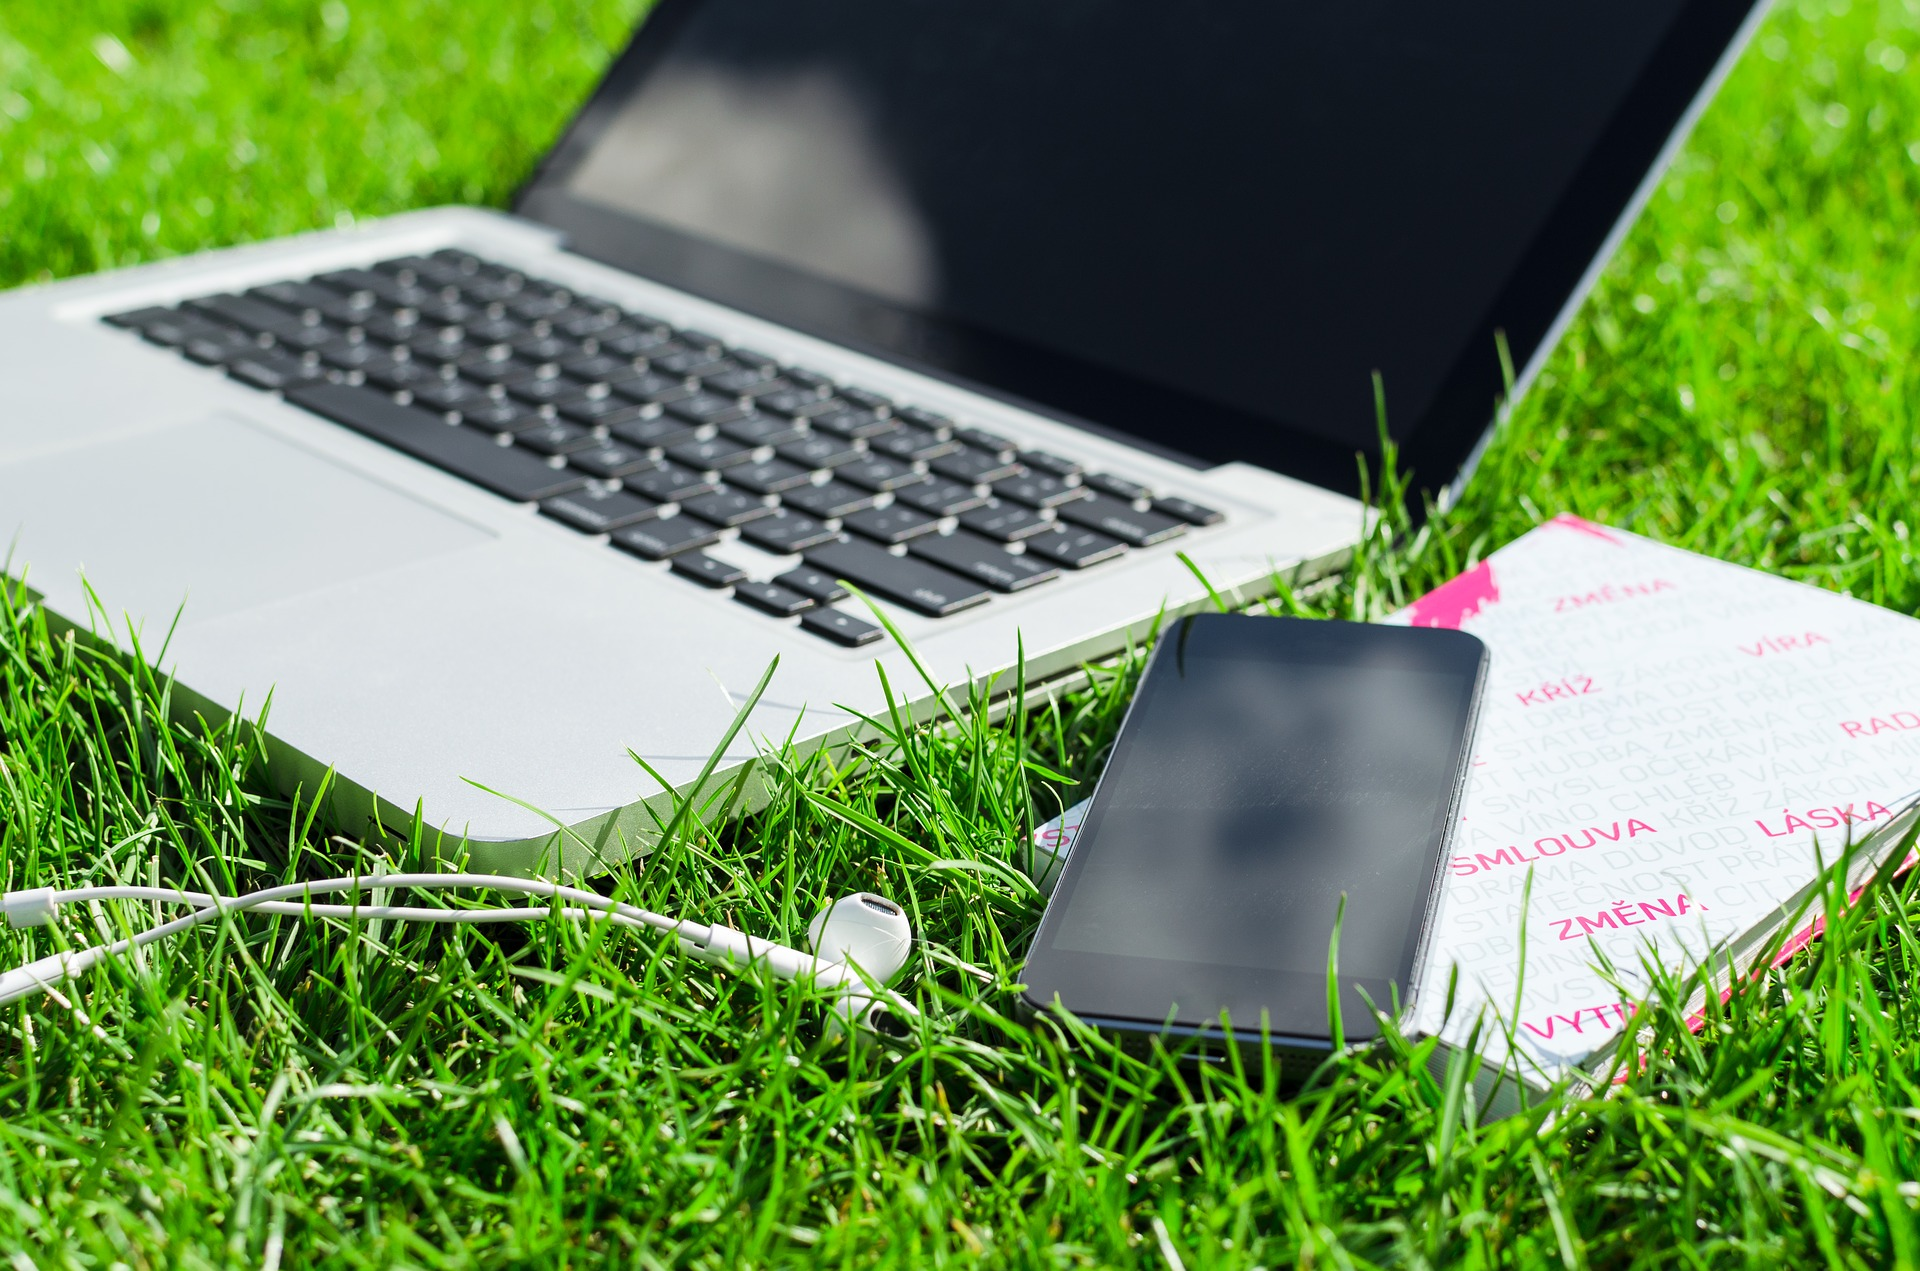 Laptop, phone, and notebook sitting on grass